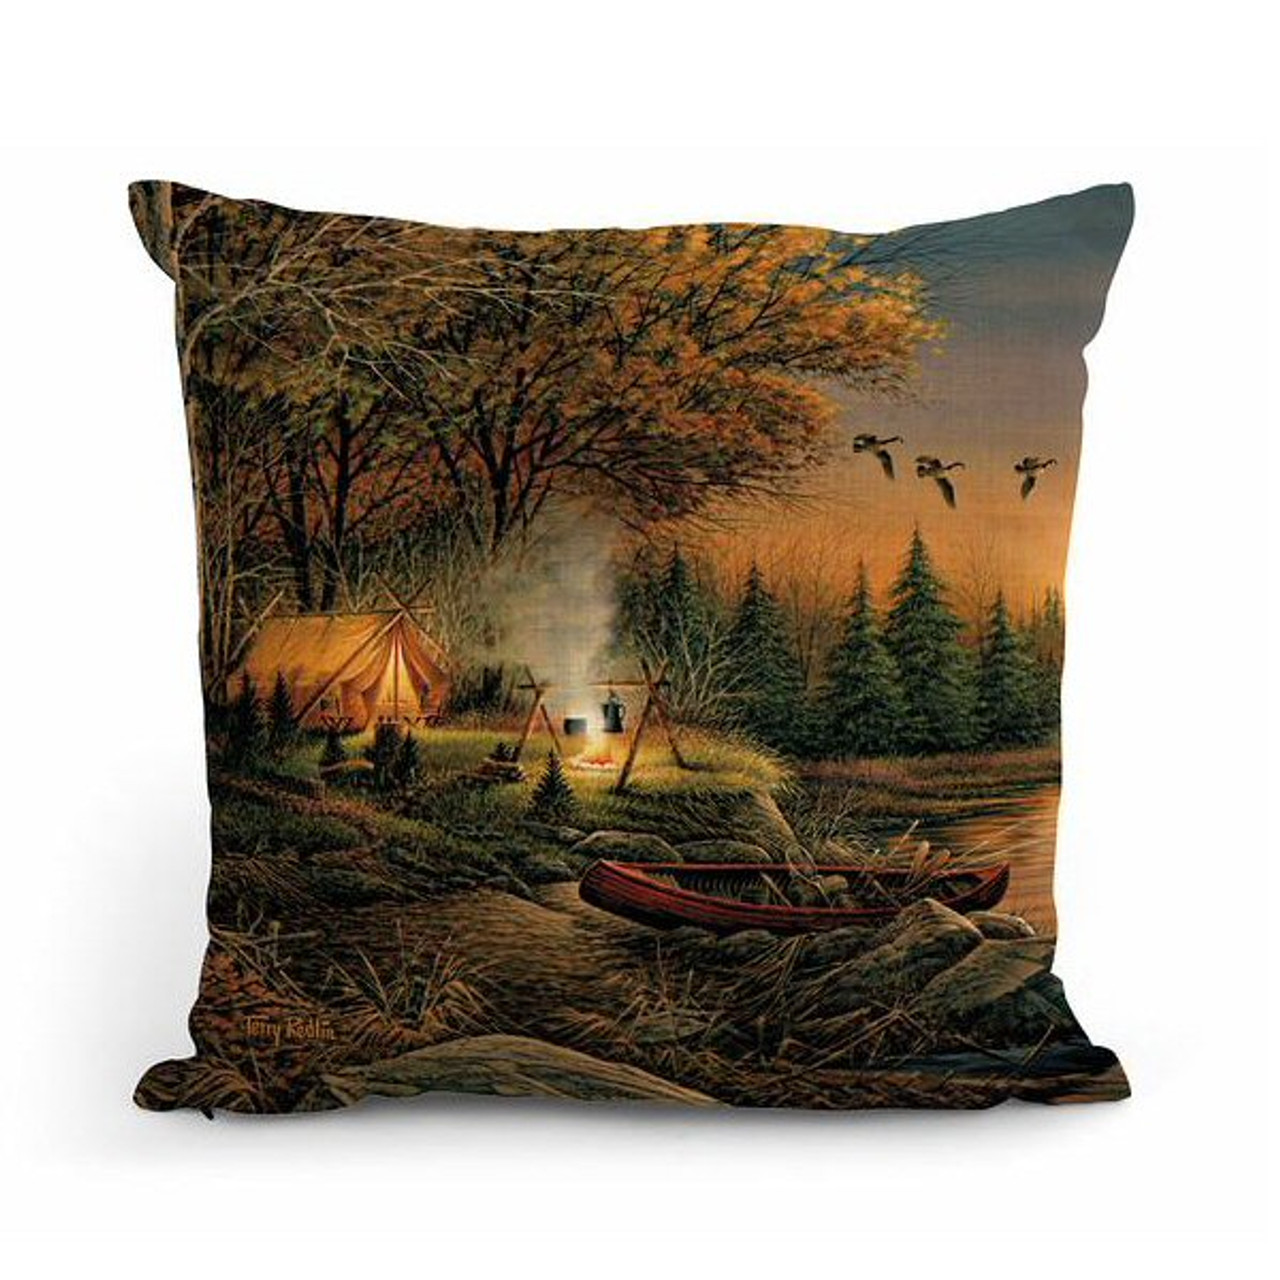 18 evening solitude camping scene square throw pillows set of 4